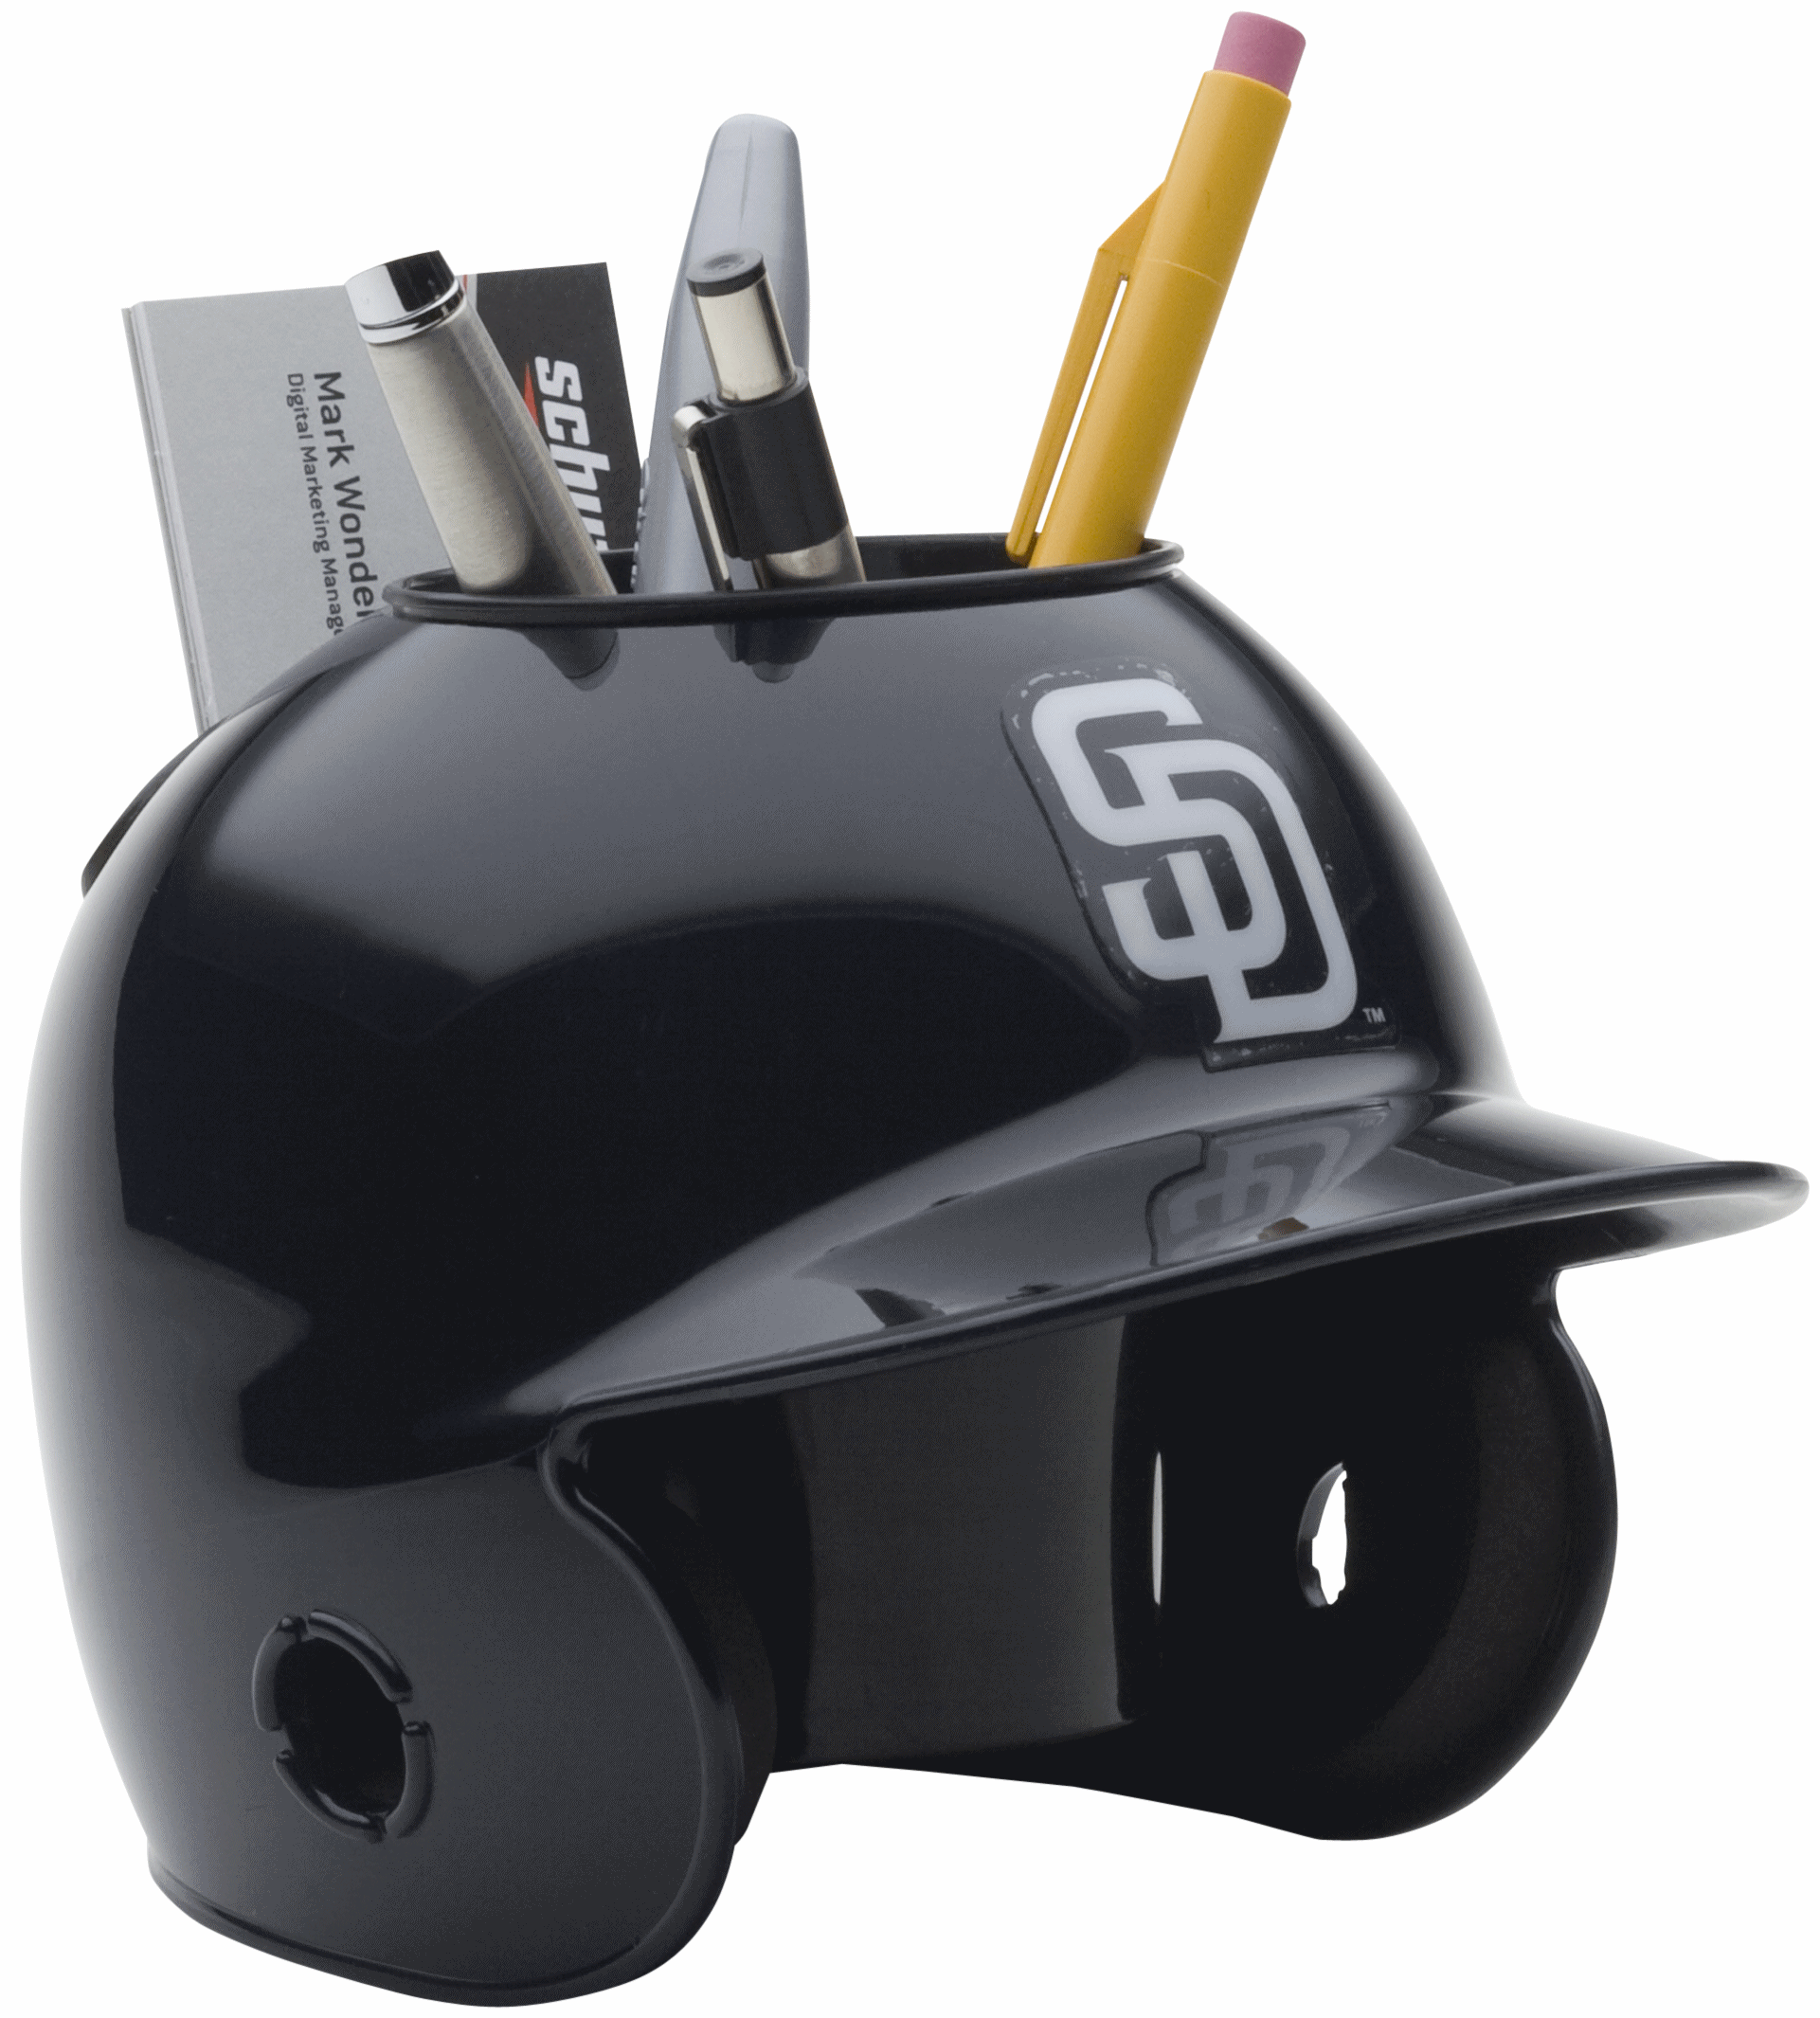 San Diego Padres Miniature Batters Helmet Desk Caddy